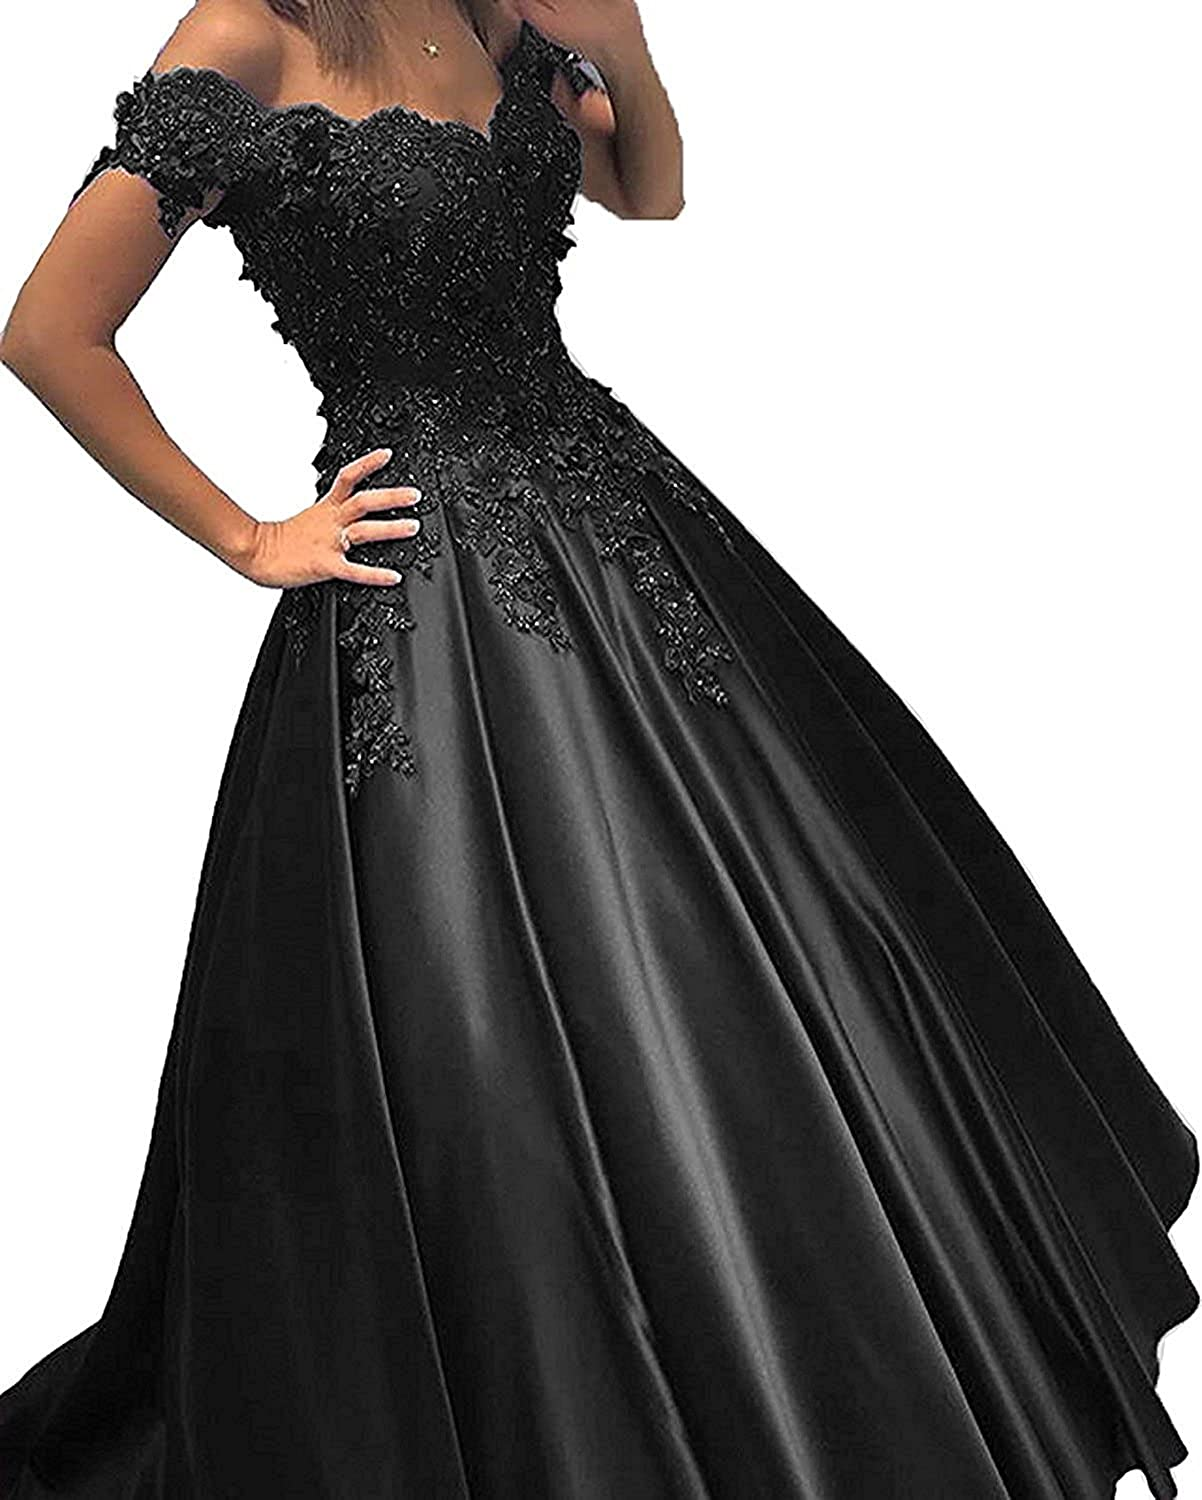 Bonnie Women's Off The Shoulder Prom Dreeses Long 2018 Lace Illusion Long Sleeves Formal Ball Gown BS035